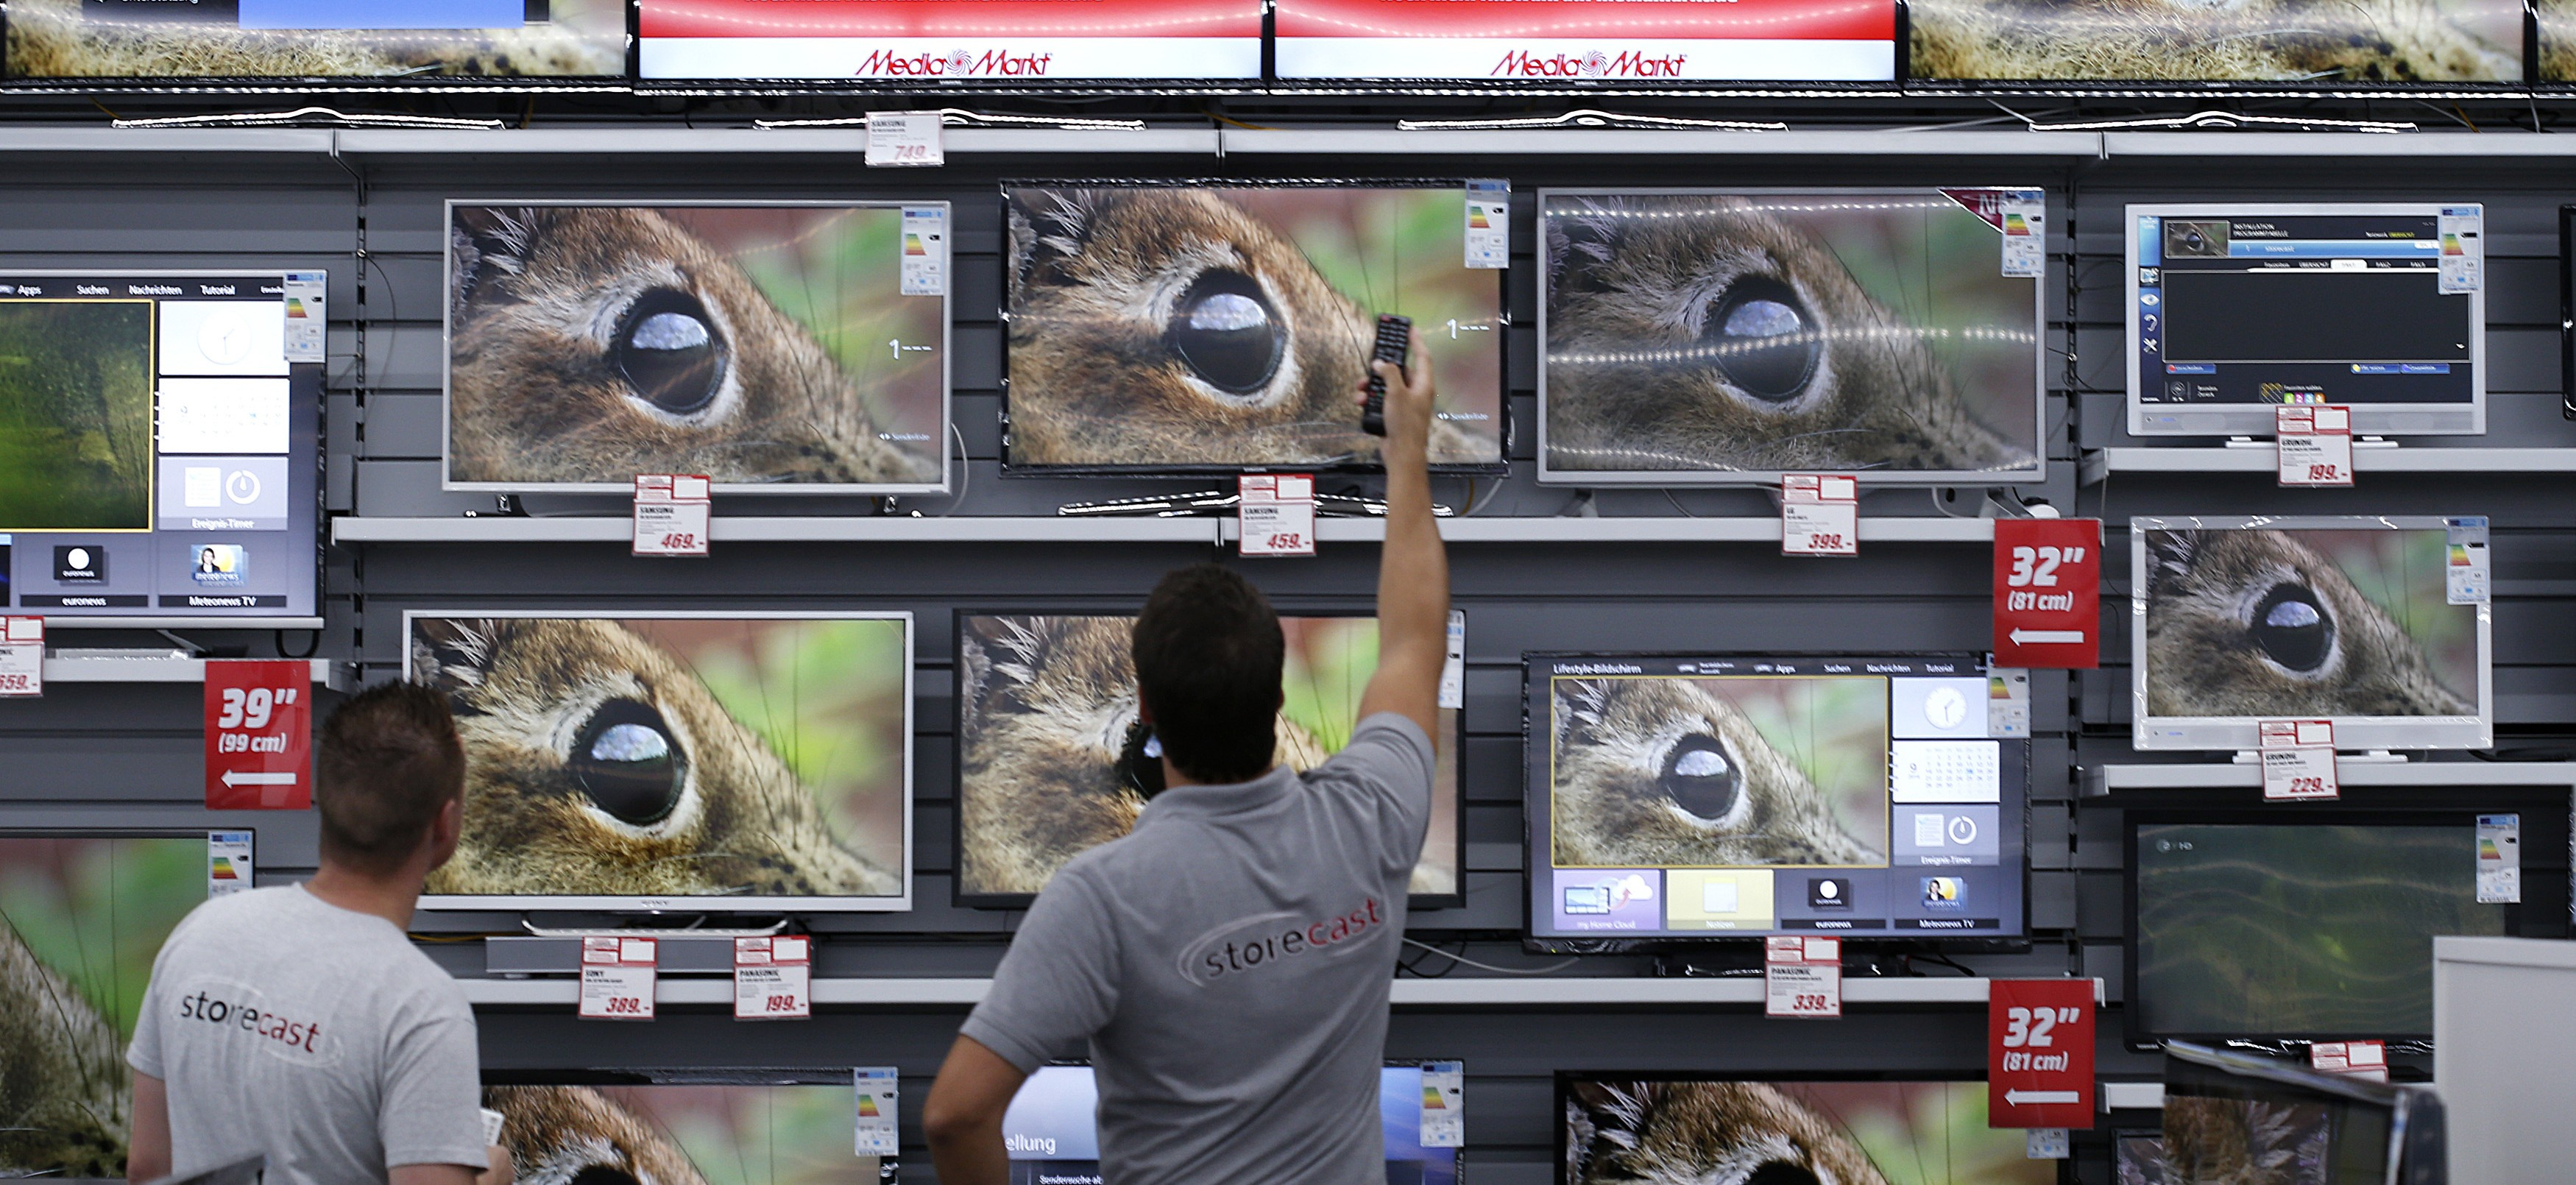 Employees of German electronics retailer Media-Saturn switch on television in their European state-of-the-art store in Ingolstadt, southern Germany, September 18, 2014. The shop will open in Ingolstadt on September 23.     REUTERS/Michaela Rehle (GERMANY - Tags: BUSINESS) - RTR46QP4